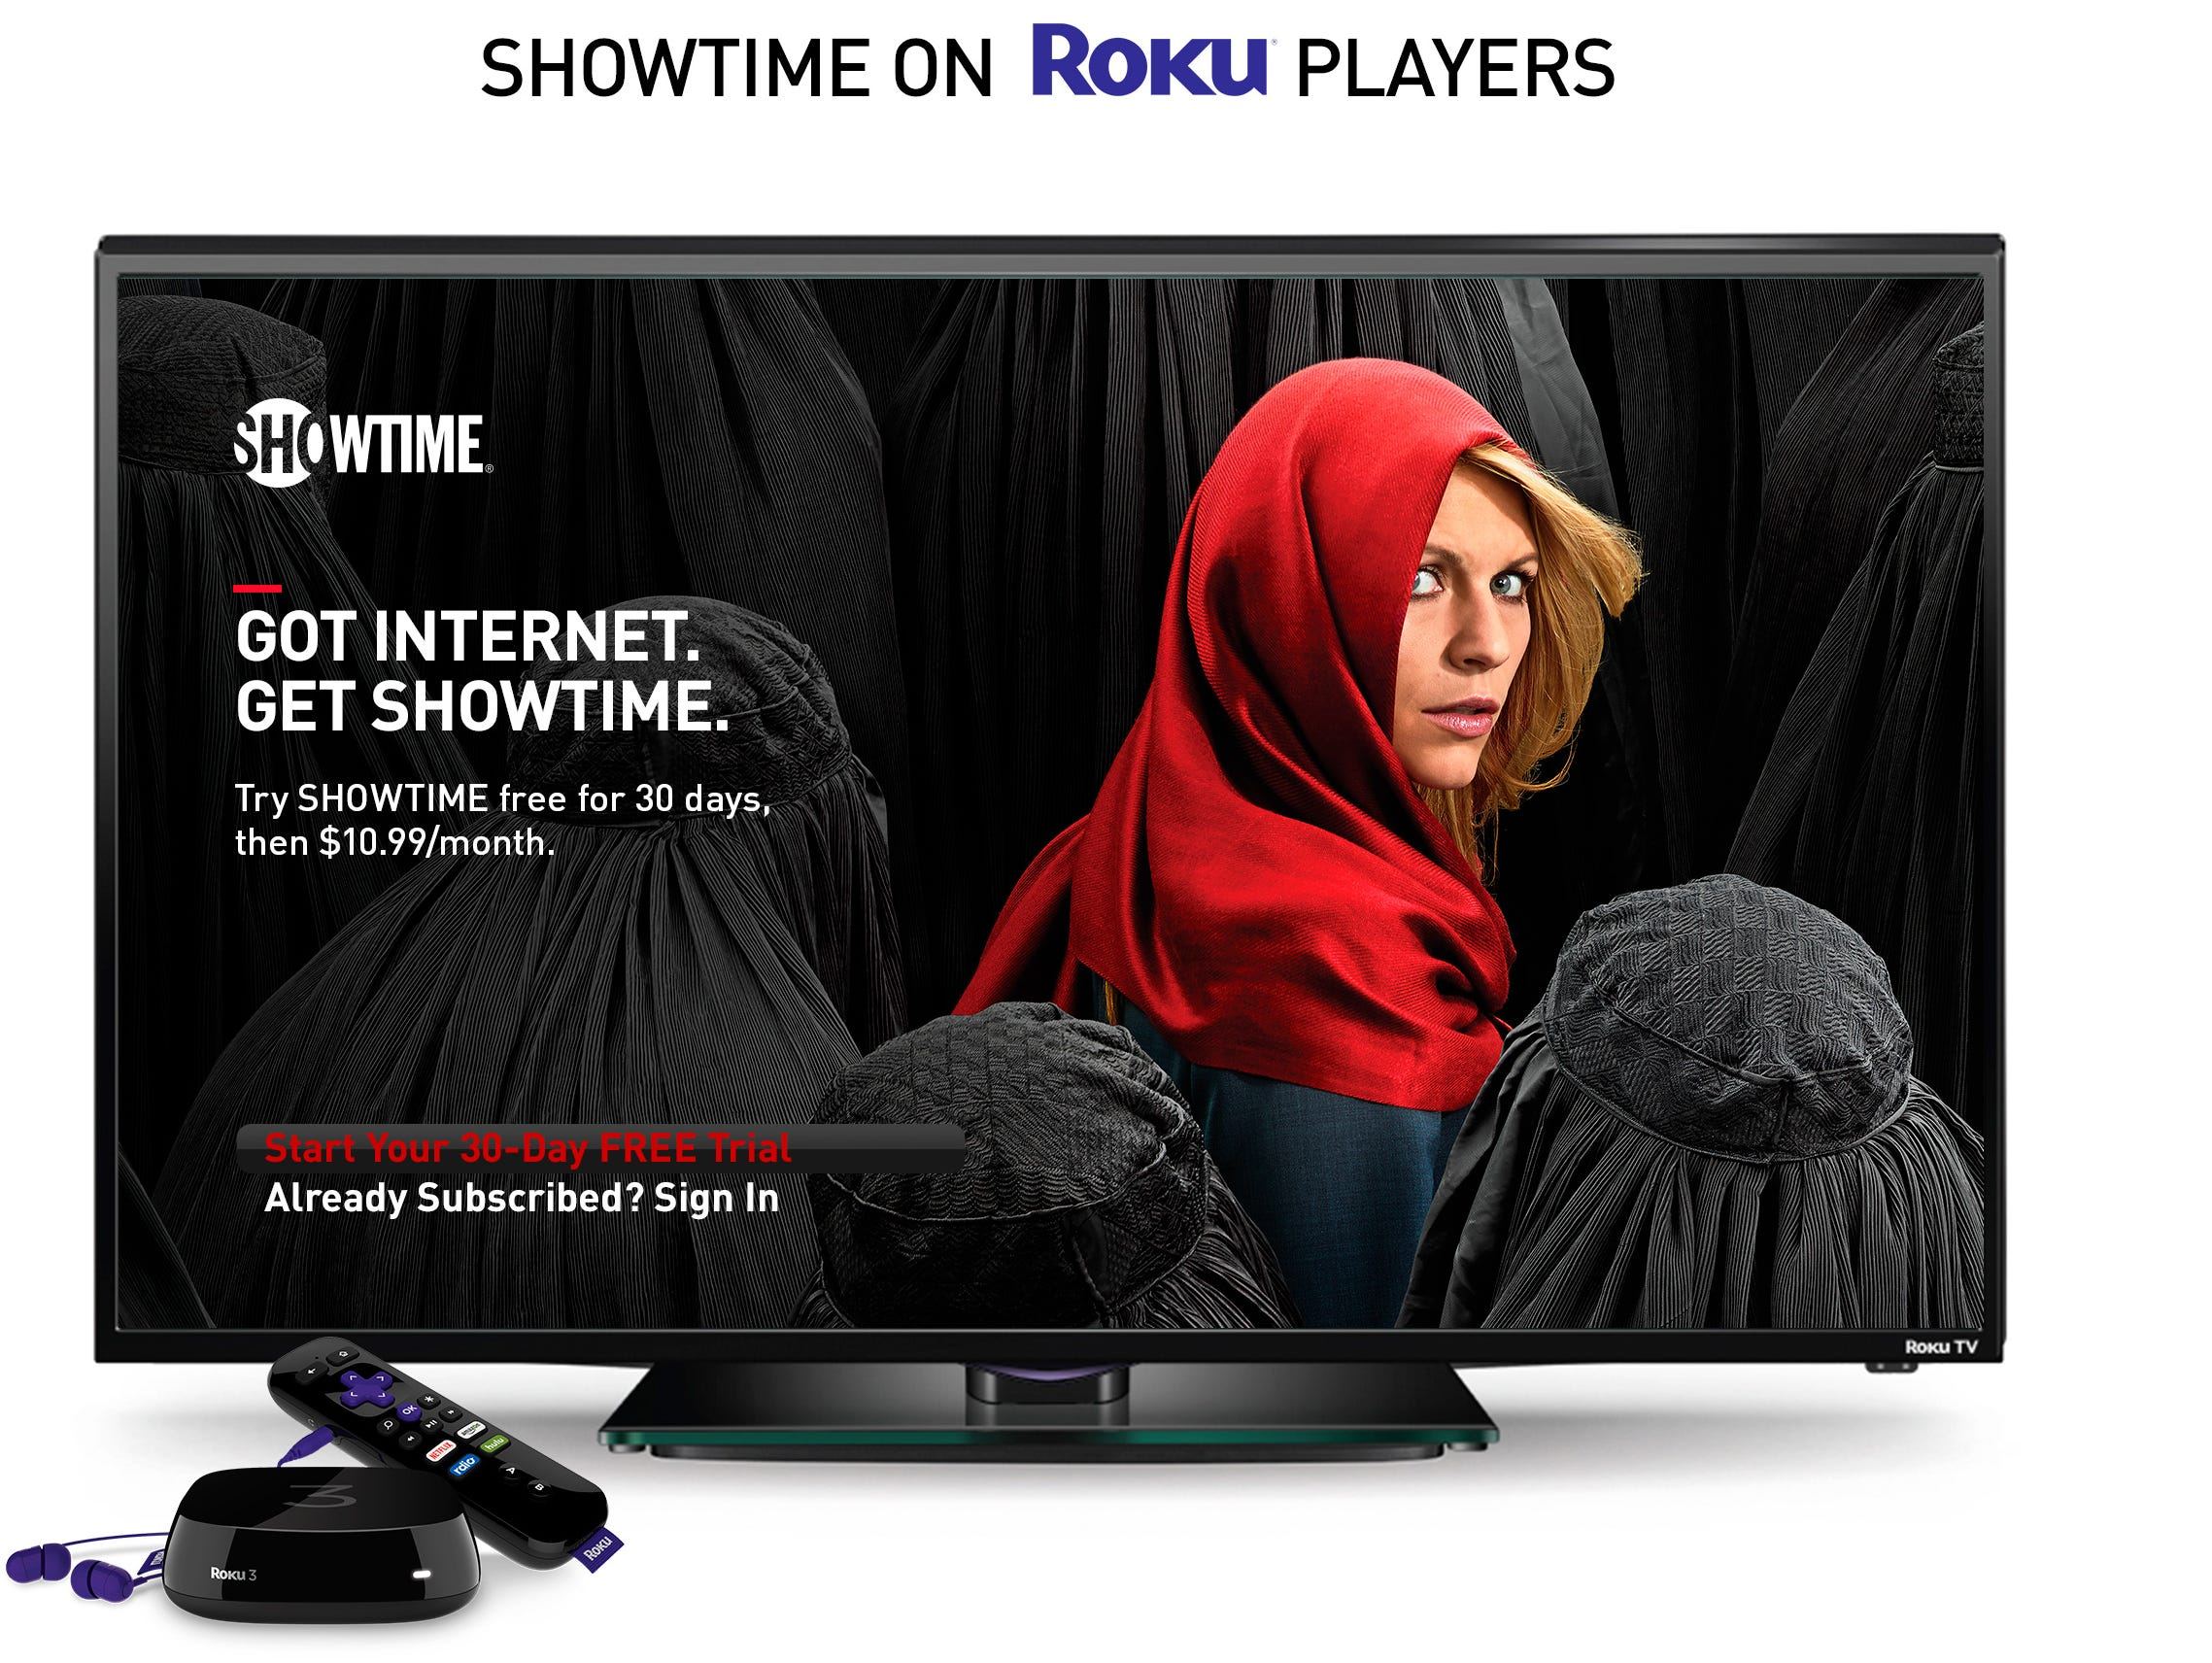 Showtime's standalone video service is coming to Roku set-top boxes.